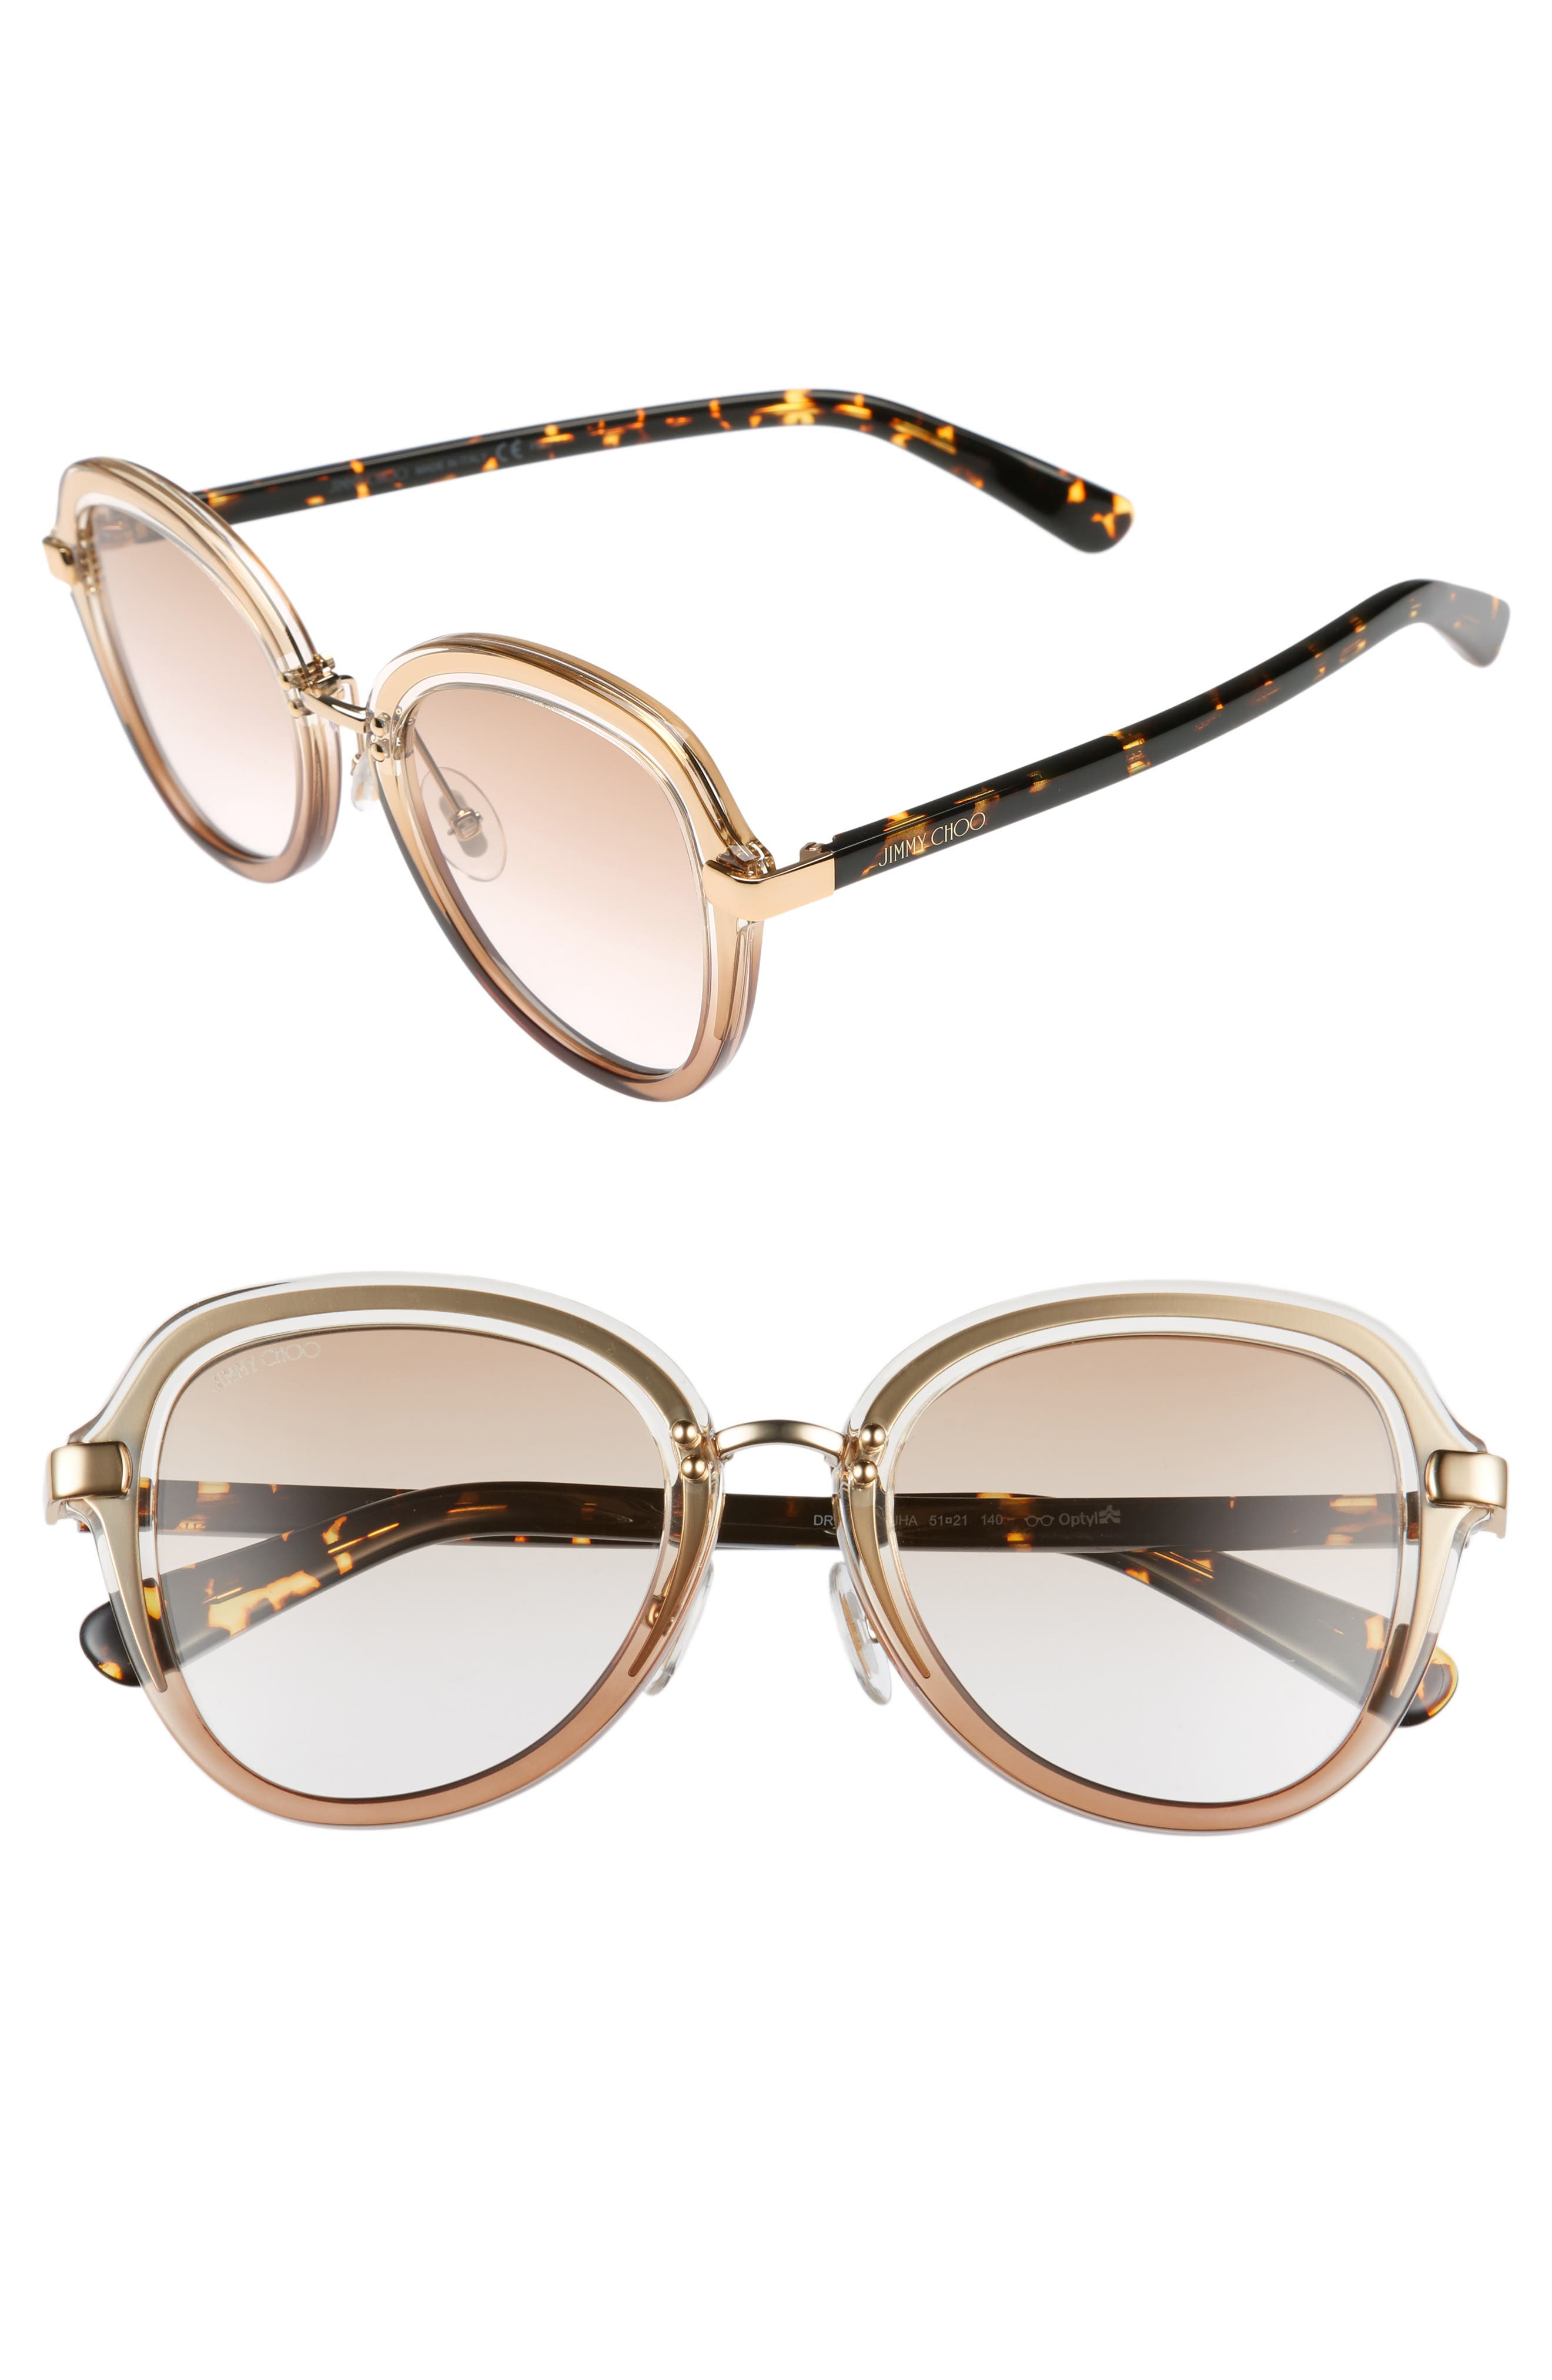 Alternate Image 1 Selected - Jimmy Choo Drees 51mm Gradient Sunglasses